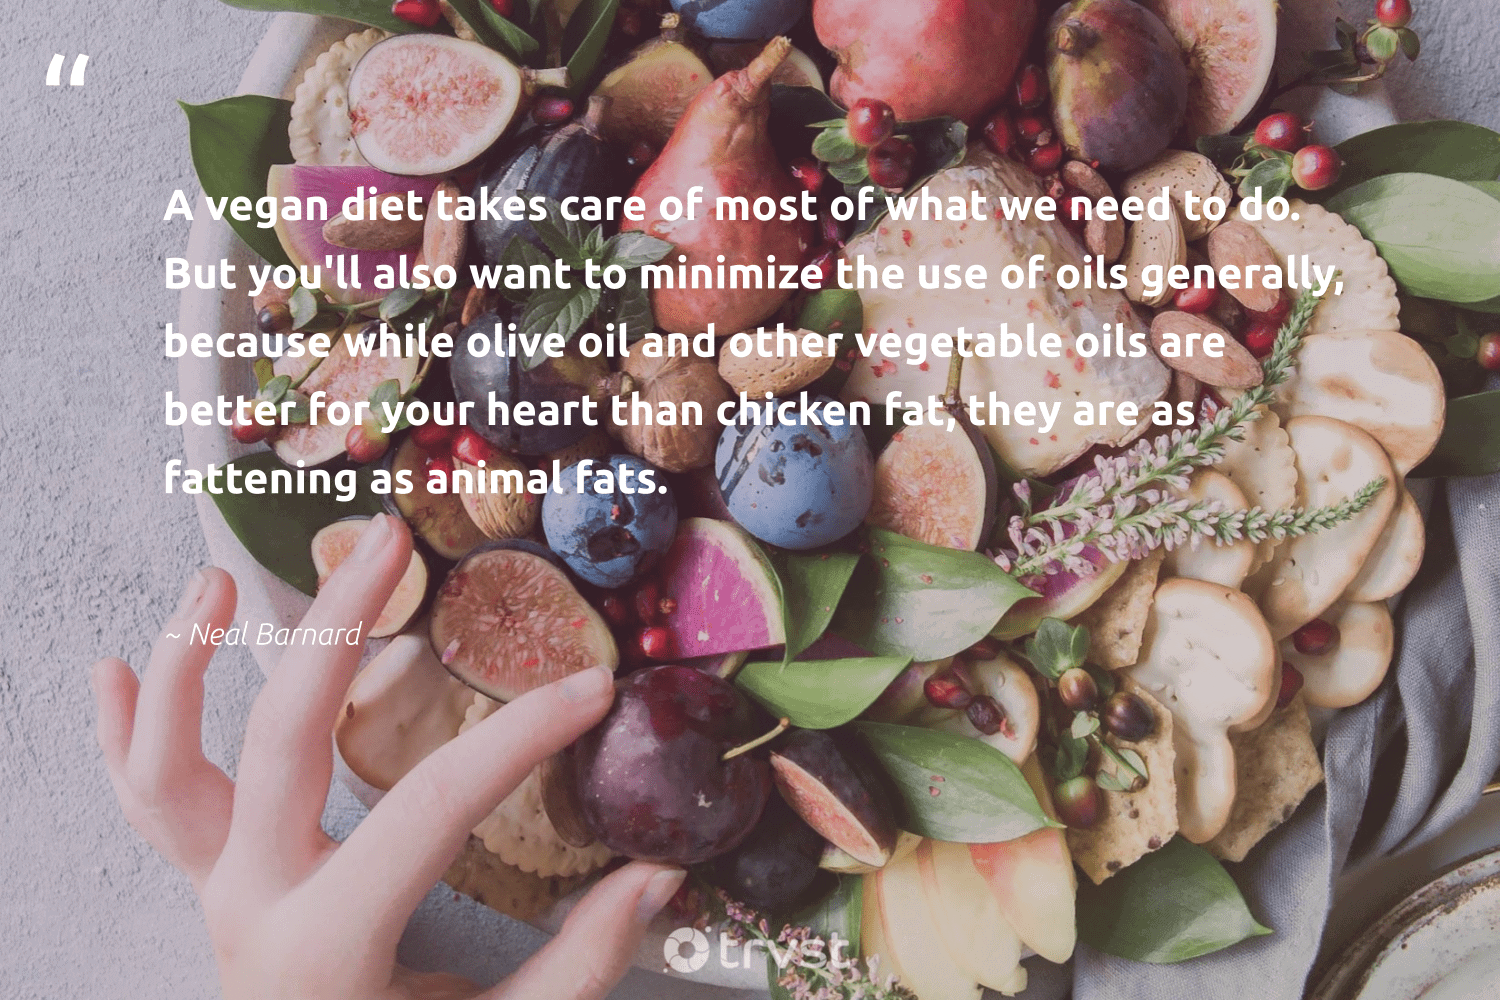 """""""A vegan diet takes care of most of what we need to do. But you'll also want to minimize the use of oils generally, because while olive oil and other vegetable oils are better for your heart than chicken fat, they are as fattening as animal fats.""""  - Neal Barnard #trvst #quotes #oil #animal #vegan #coal #green #climateaction #takeaction #fossilfuels #sustainability #planetearth"""